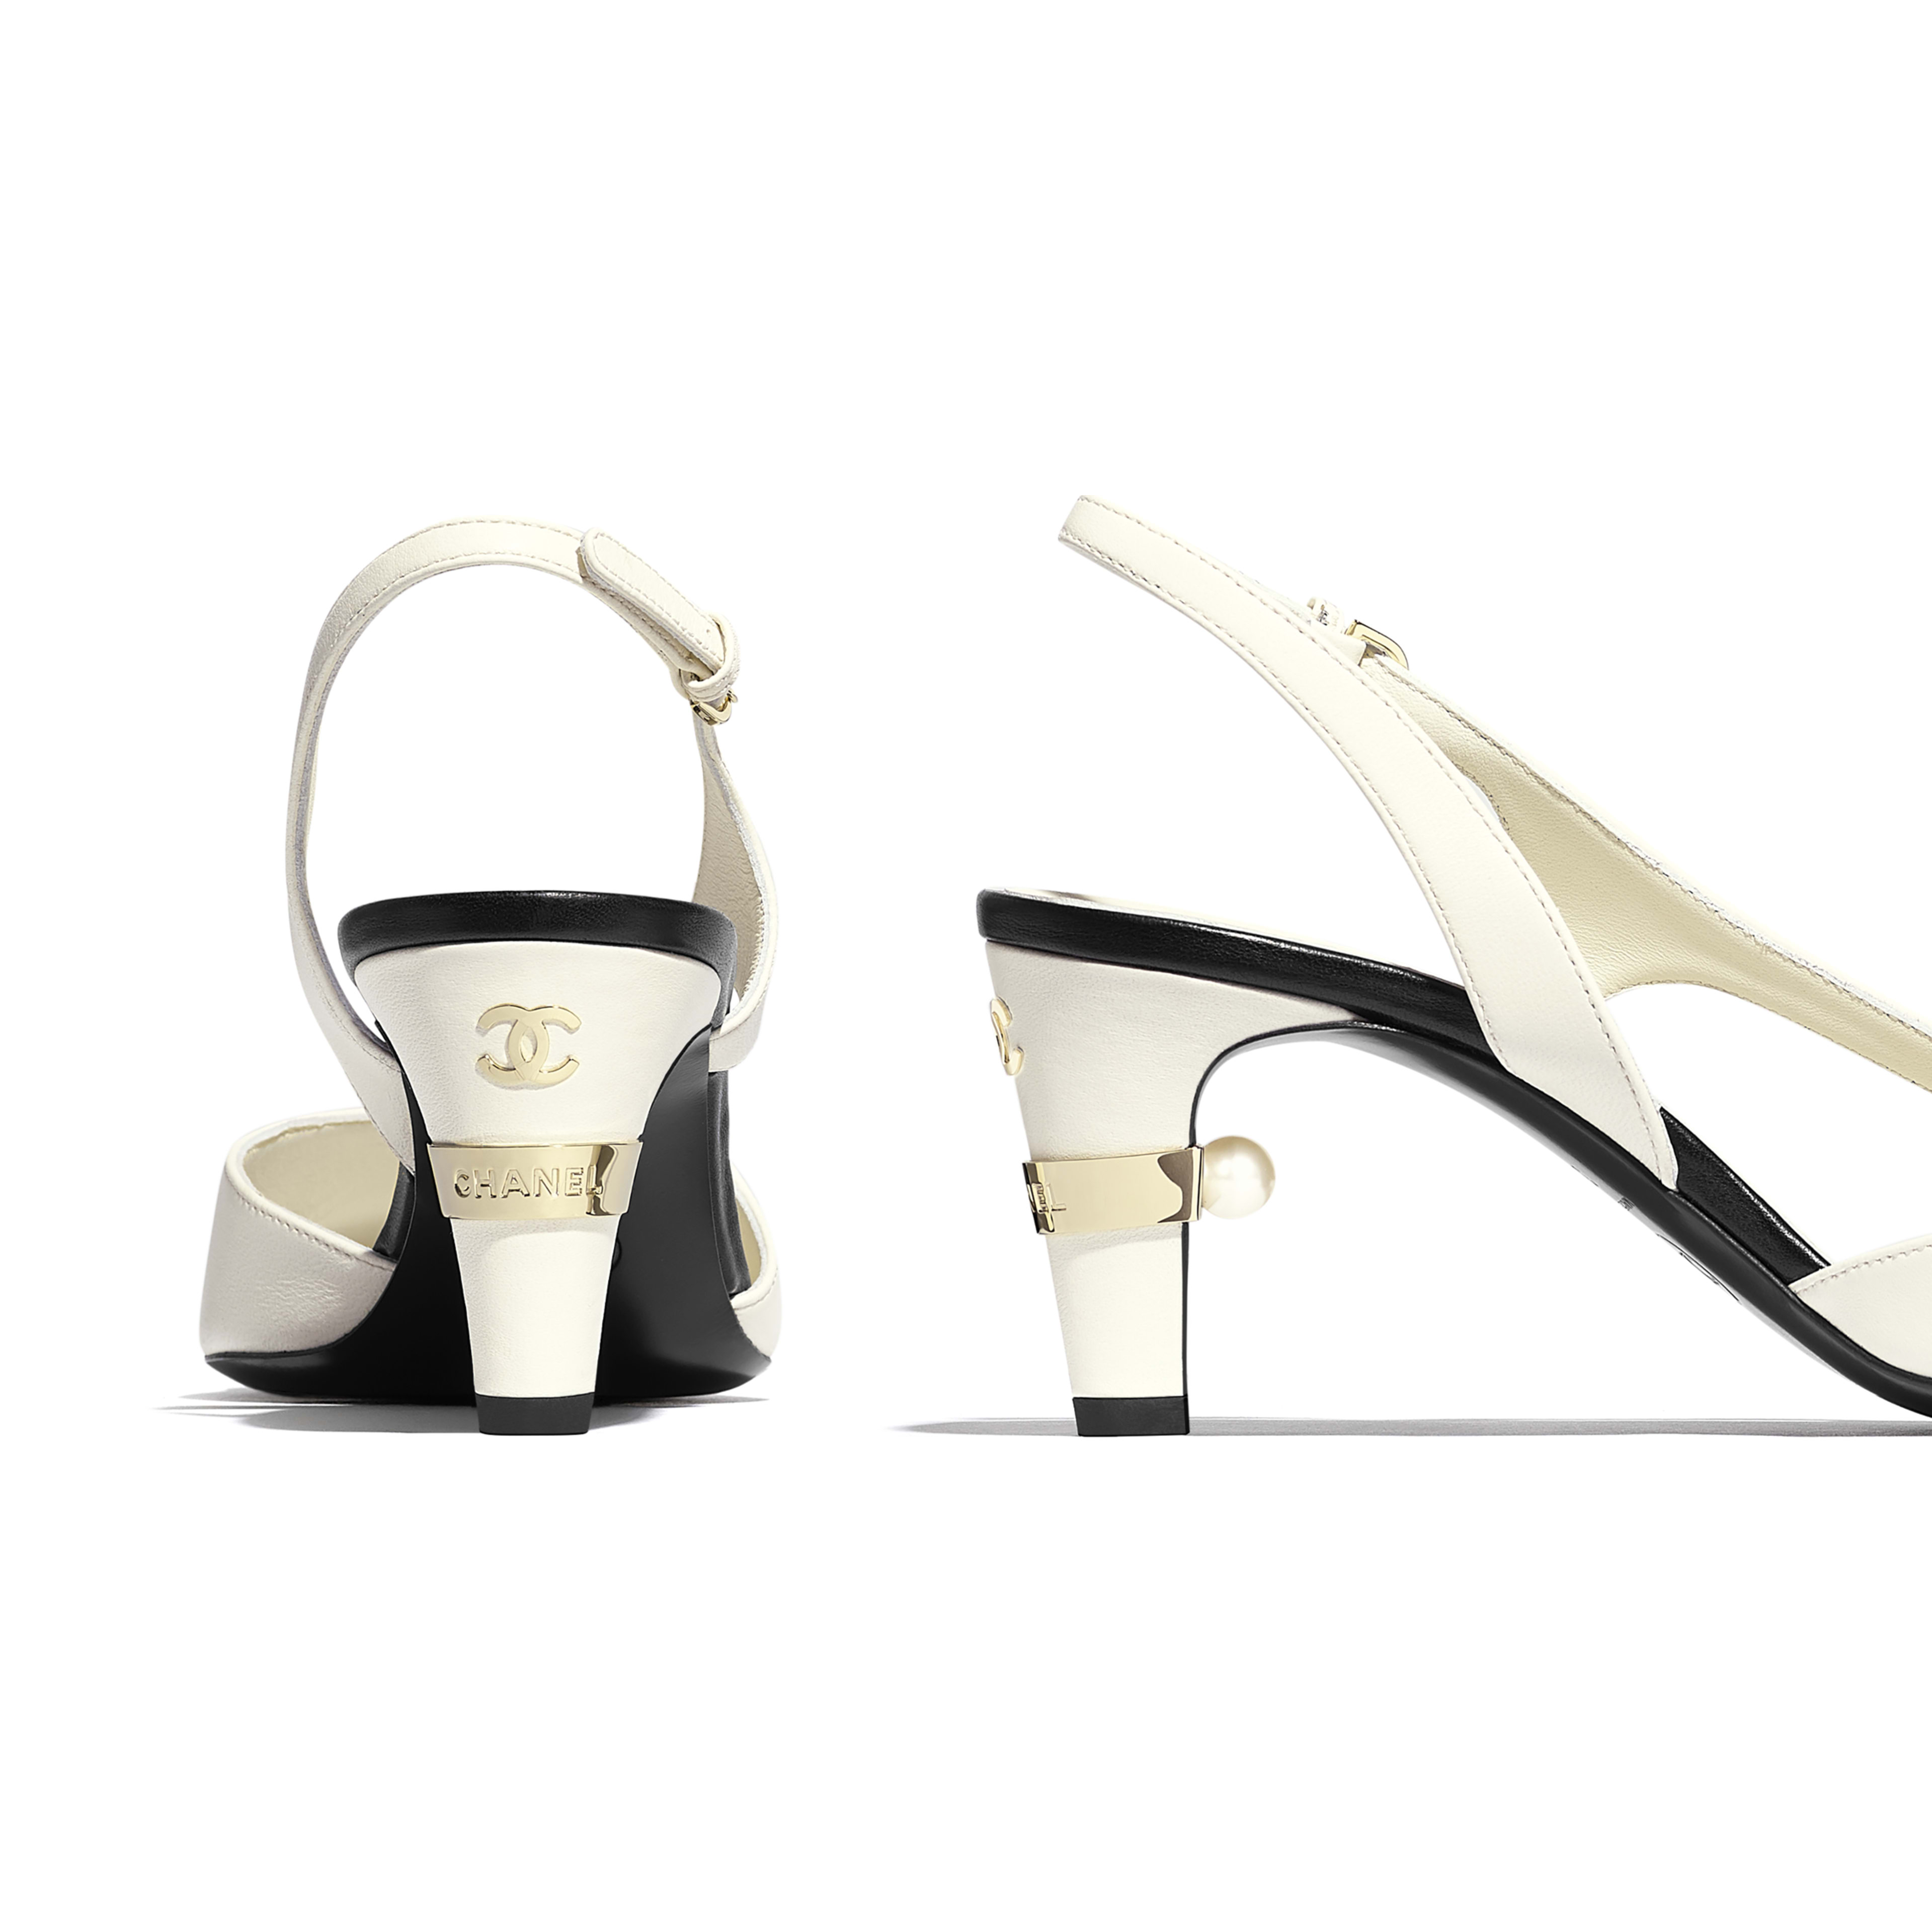 Sling-Back - Ivory & Black - Lambskin - Extra view - see full sized version